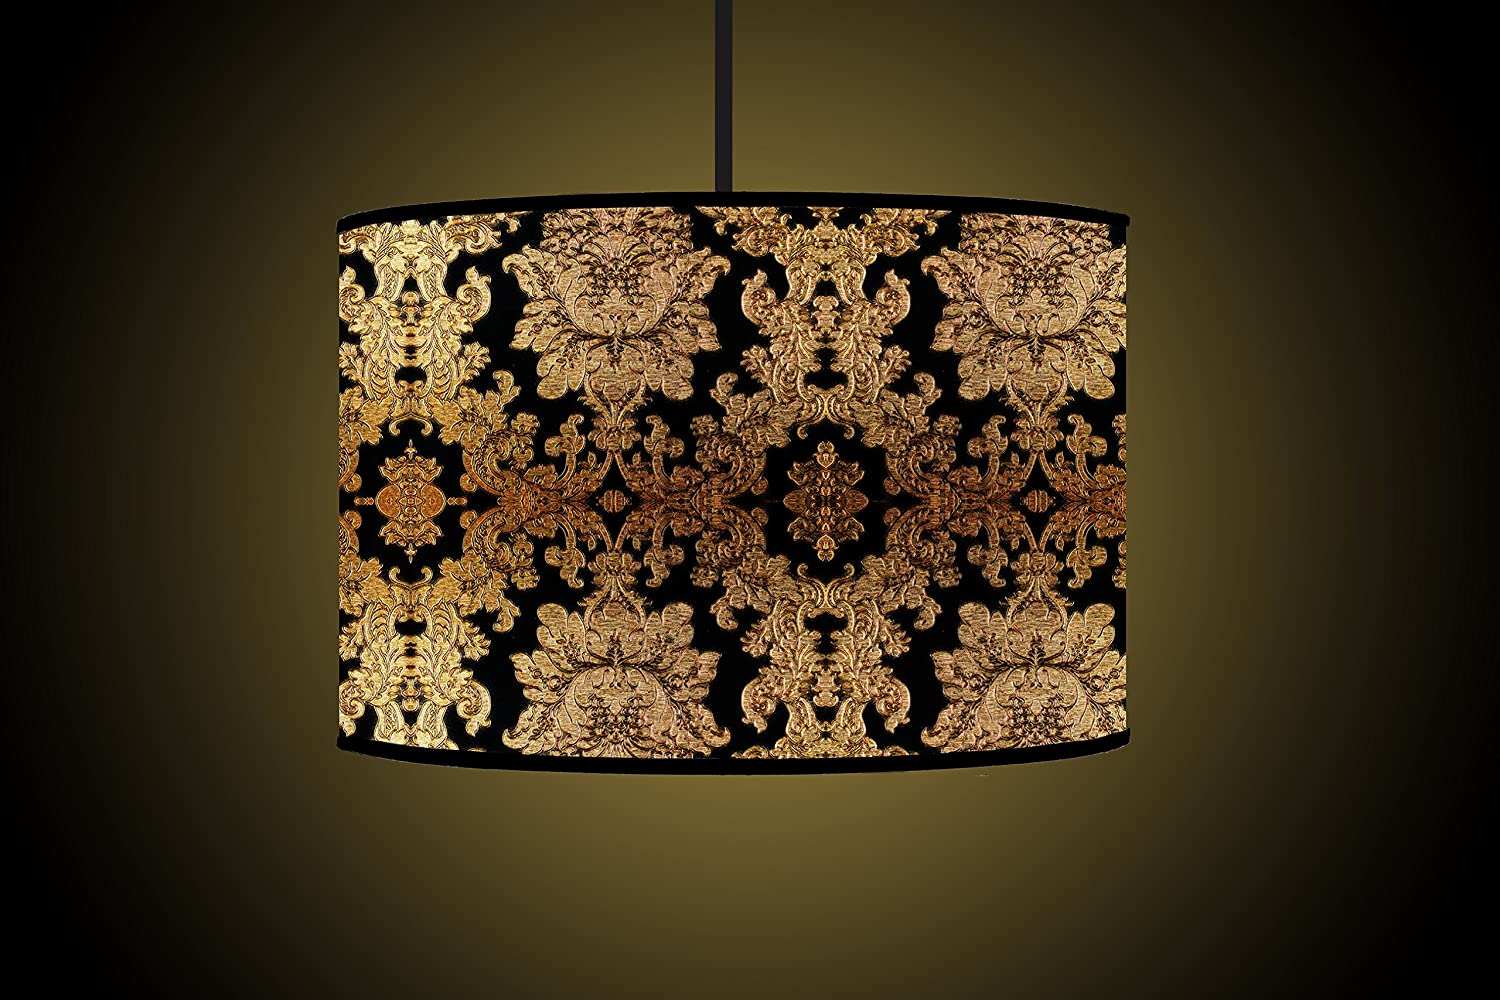 New 45cm black gold lampshade ceiling light lampsh amazon new 45cm black gold lampshade ceiling light lampsh amazon kitchen home aloadofball Image collections